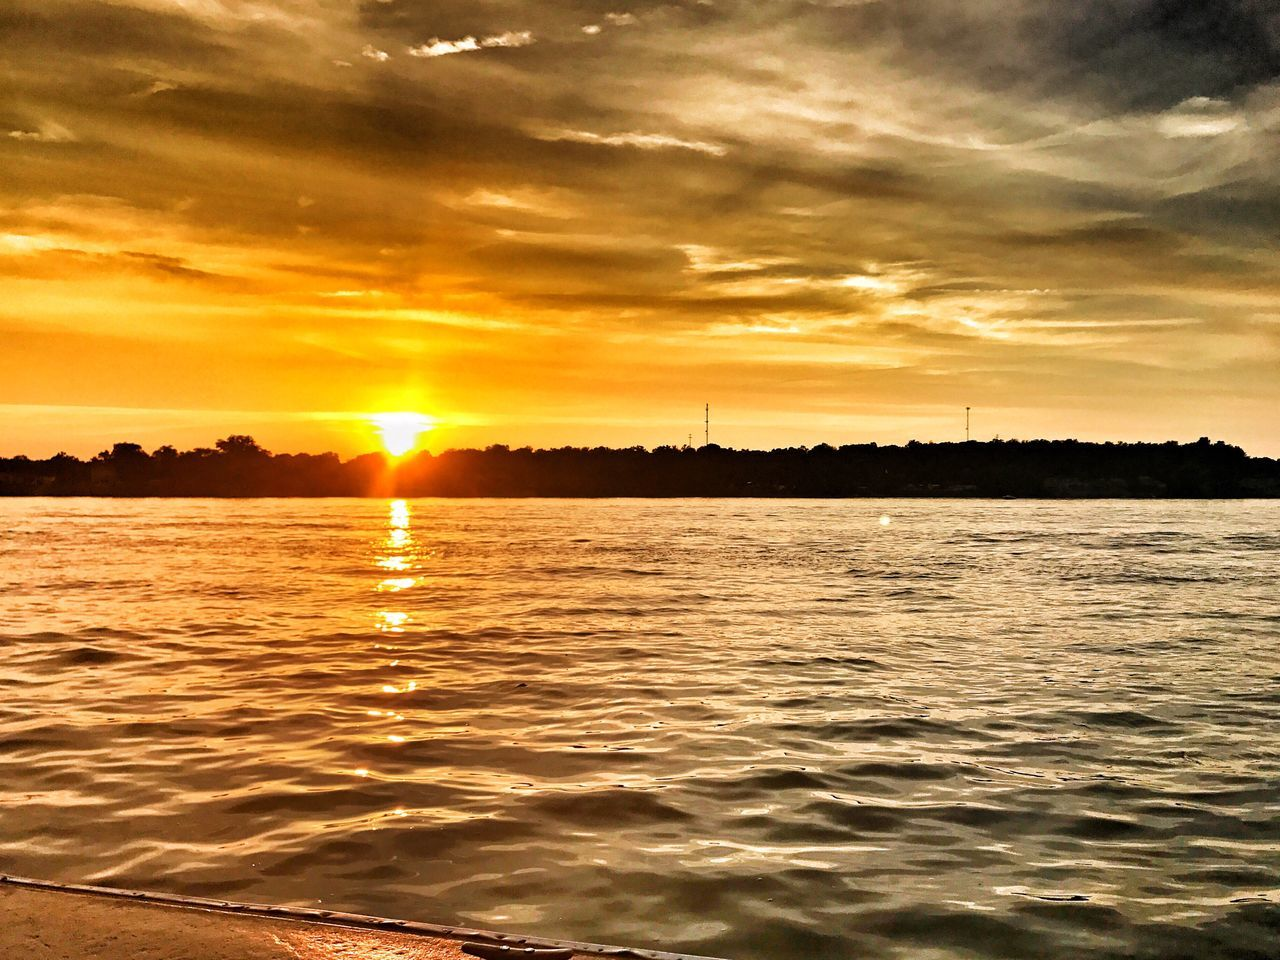 Gorgeous Louisville sunset on the river. Sunset Sun Reflection Beauty In Nature Orange Color Scenics Water Sky Cloud - Sky Tranquility Tranquil Scene Waterfront Louisville Kentucky